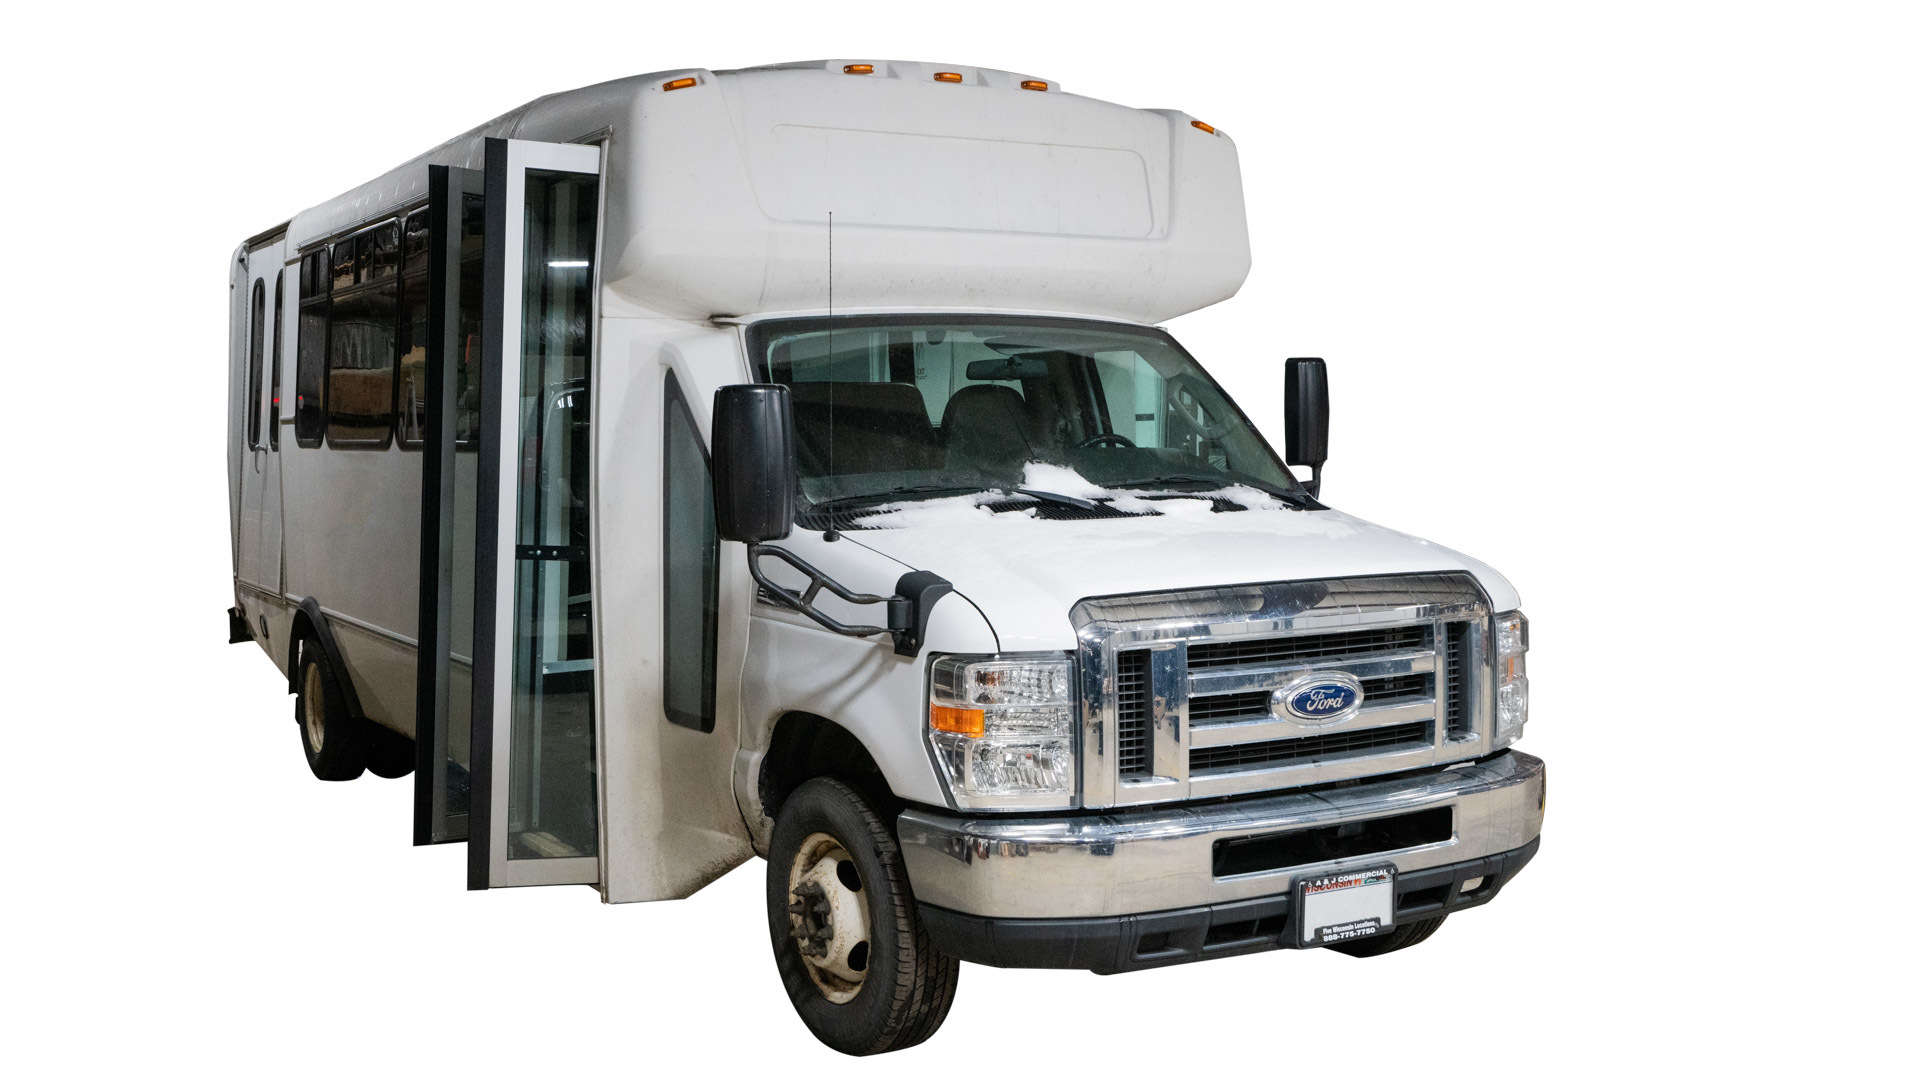 2015 Ford E-450 | Conversion: ADA Wheelchair Accessible Bus